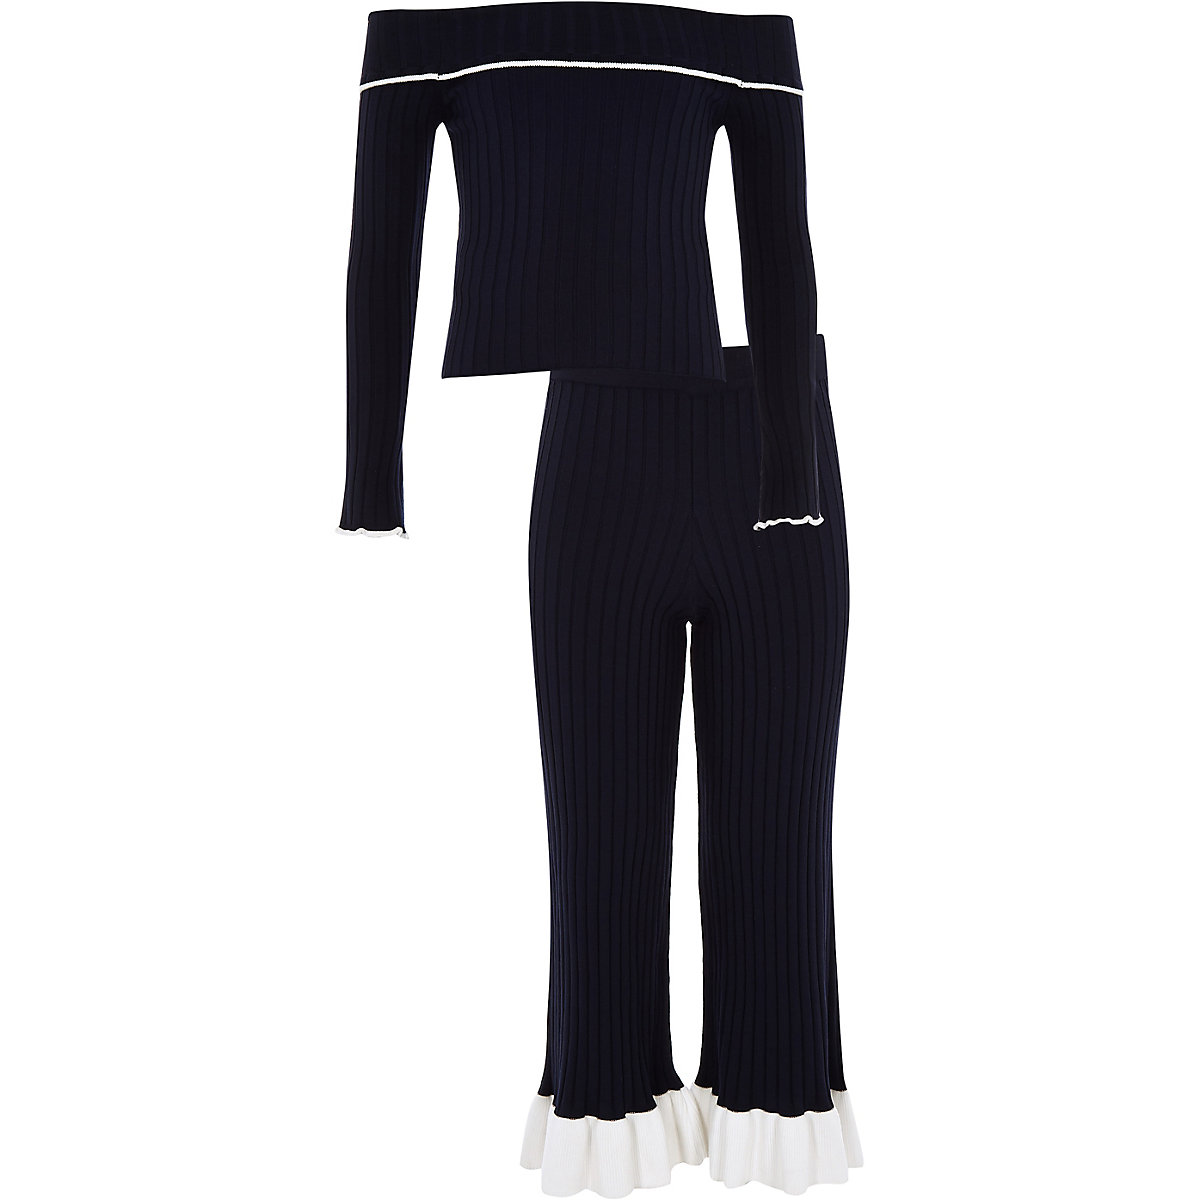 Girls navy knit ribbed bardot top outfit